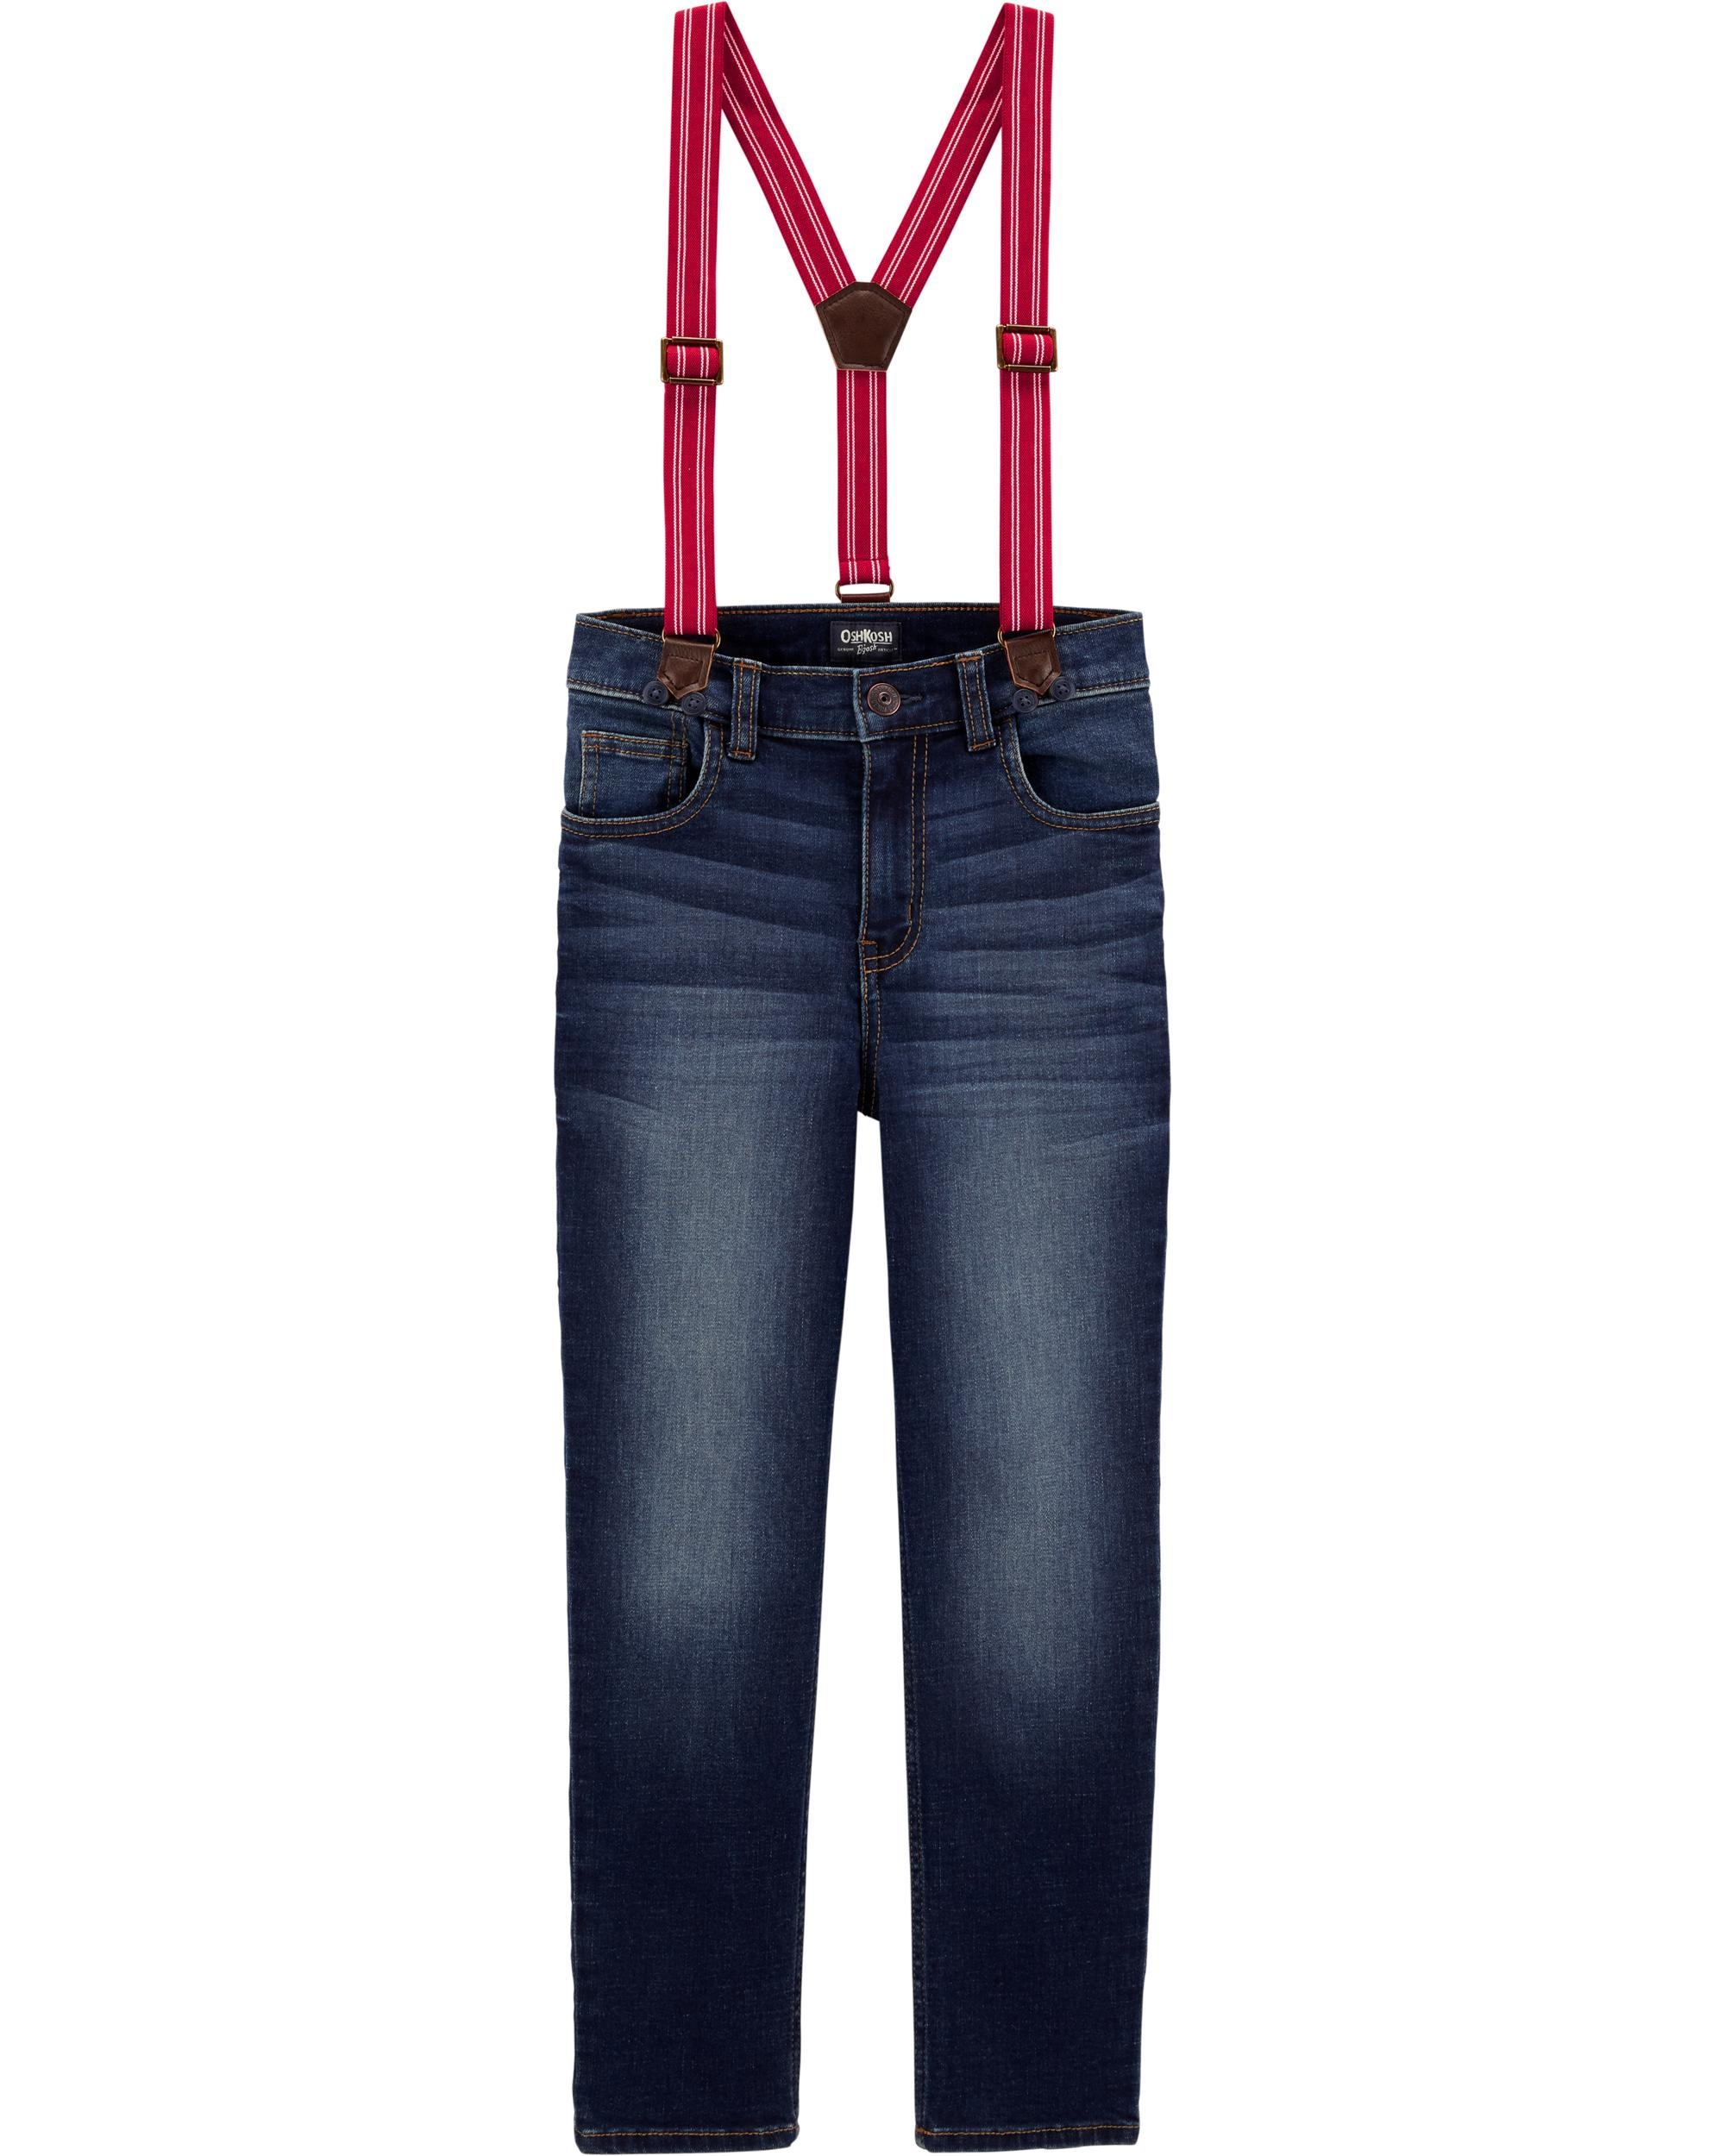 Oshkosh Jeans cu bretele imagine